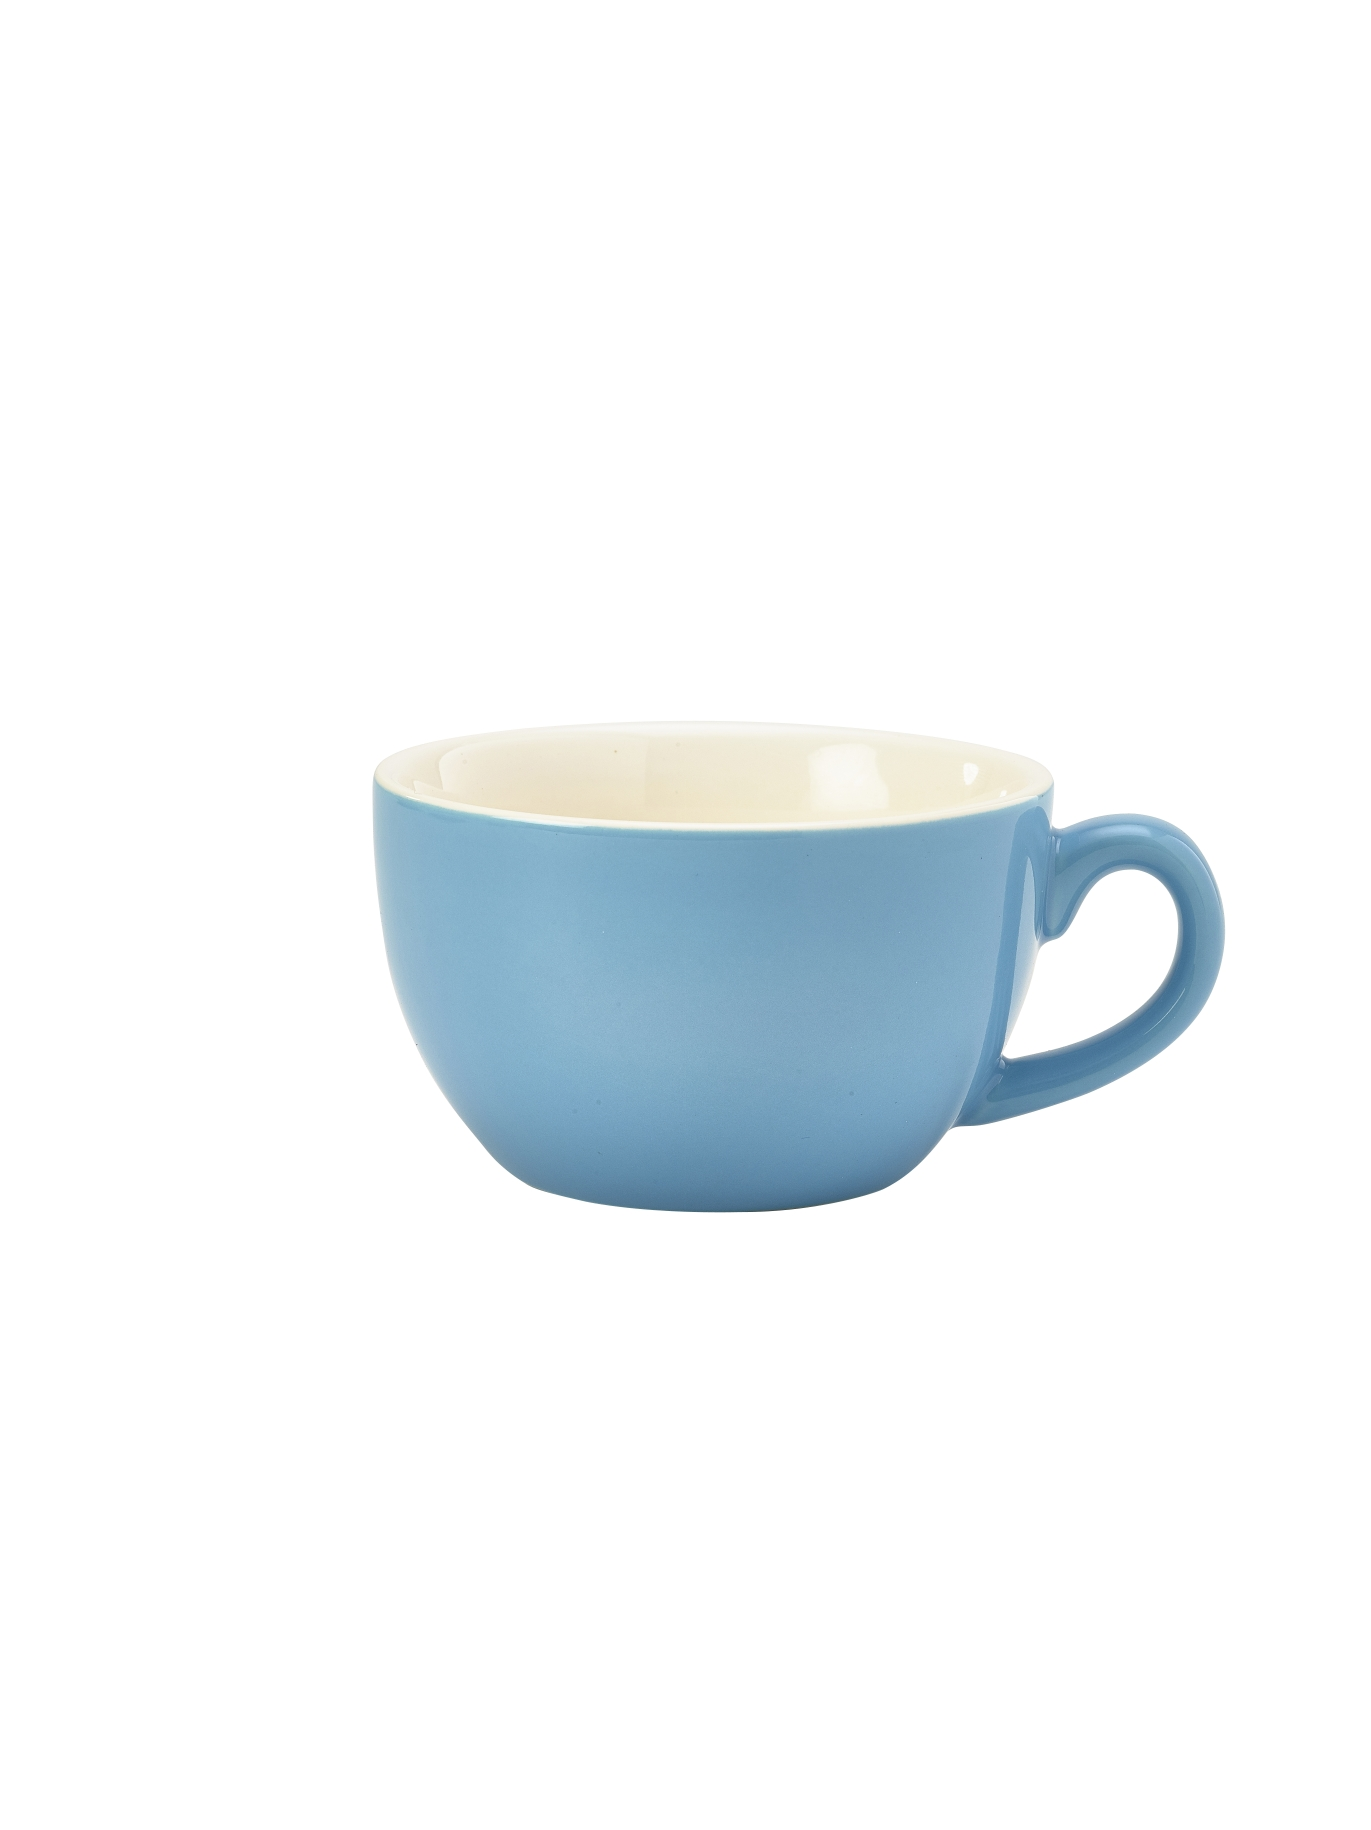 Genware Porcelain Bowl Shaped Cup 25cl Blue